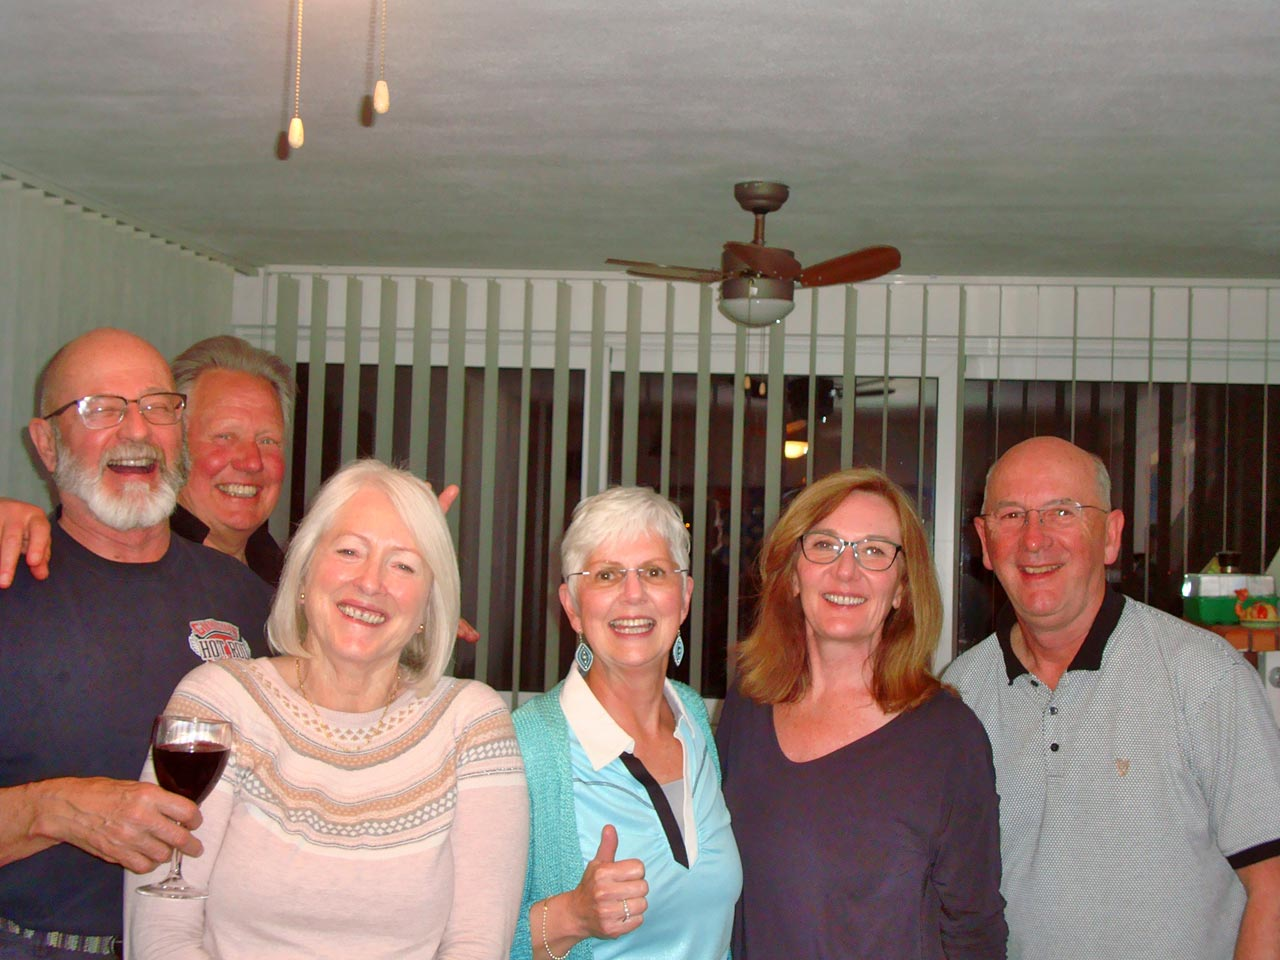 Left to Right: Bruce Irgens, Arvid Koris, Jakki Koris, Sue Higgins, Darlene Irgens, Mike Higgins